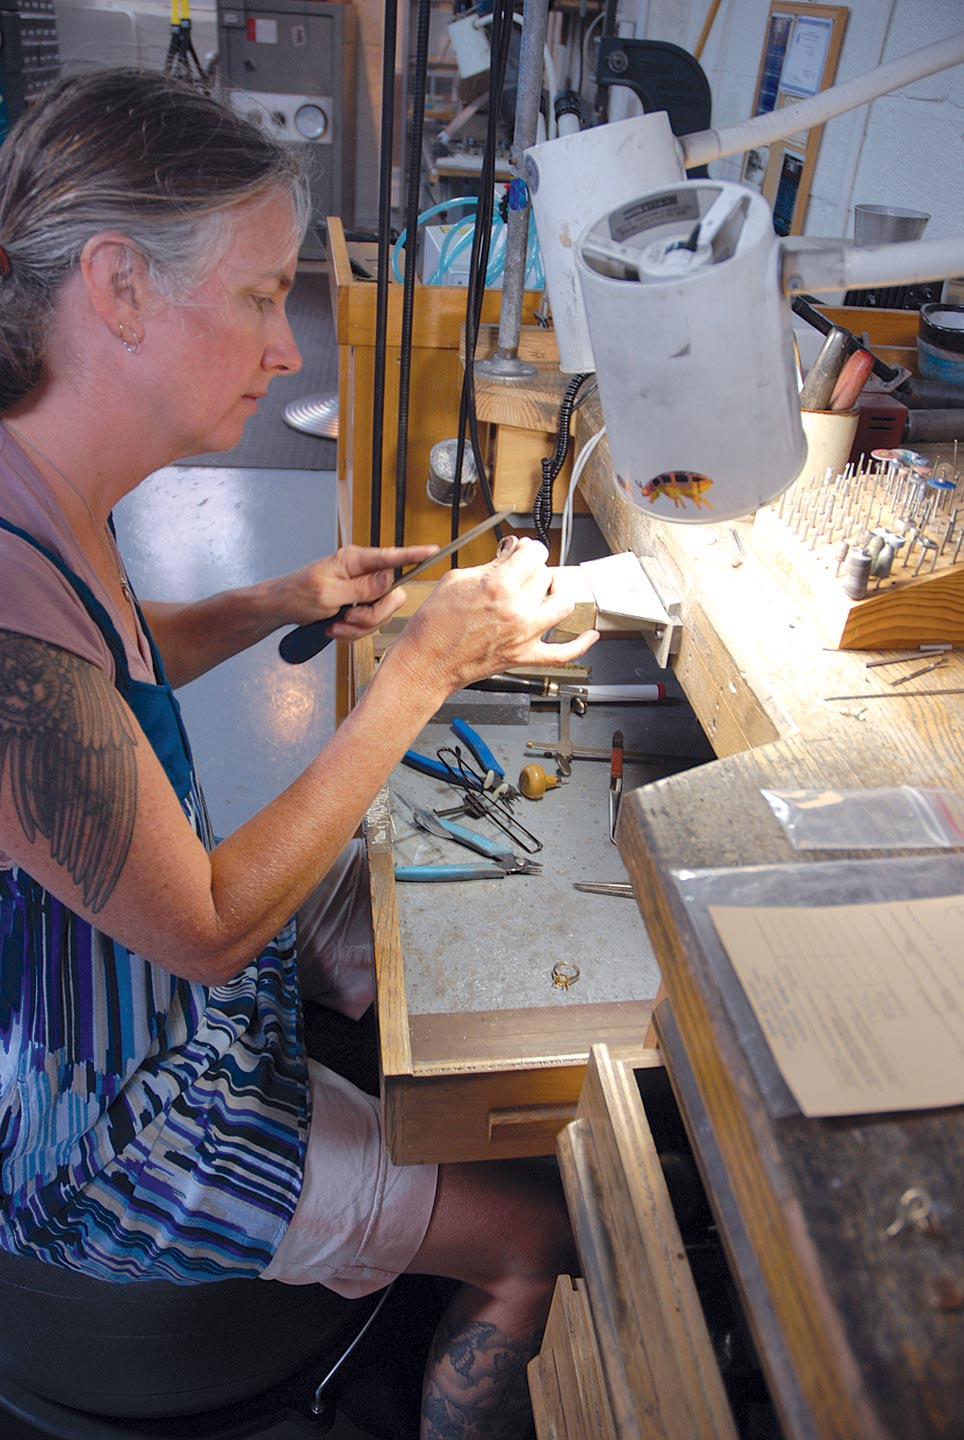 CAROL ROHMANN GREENE, Marraccini's assistant, working at her bench.